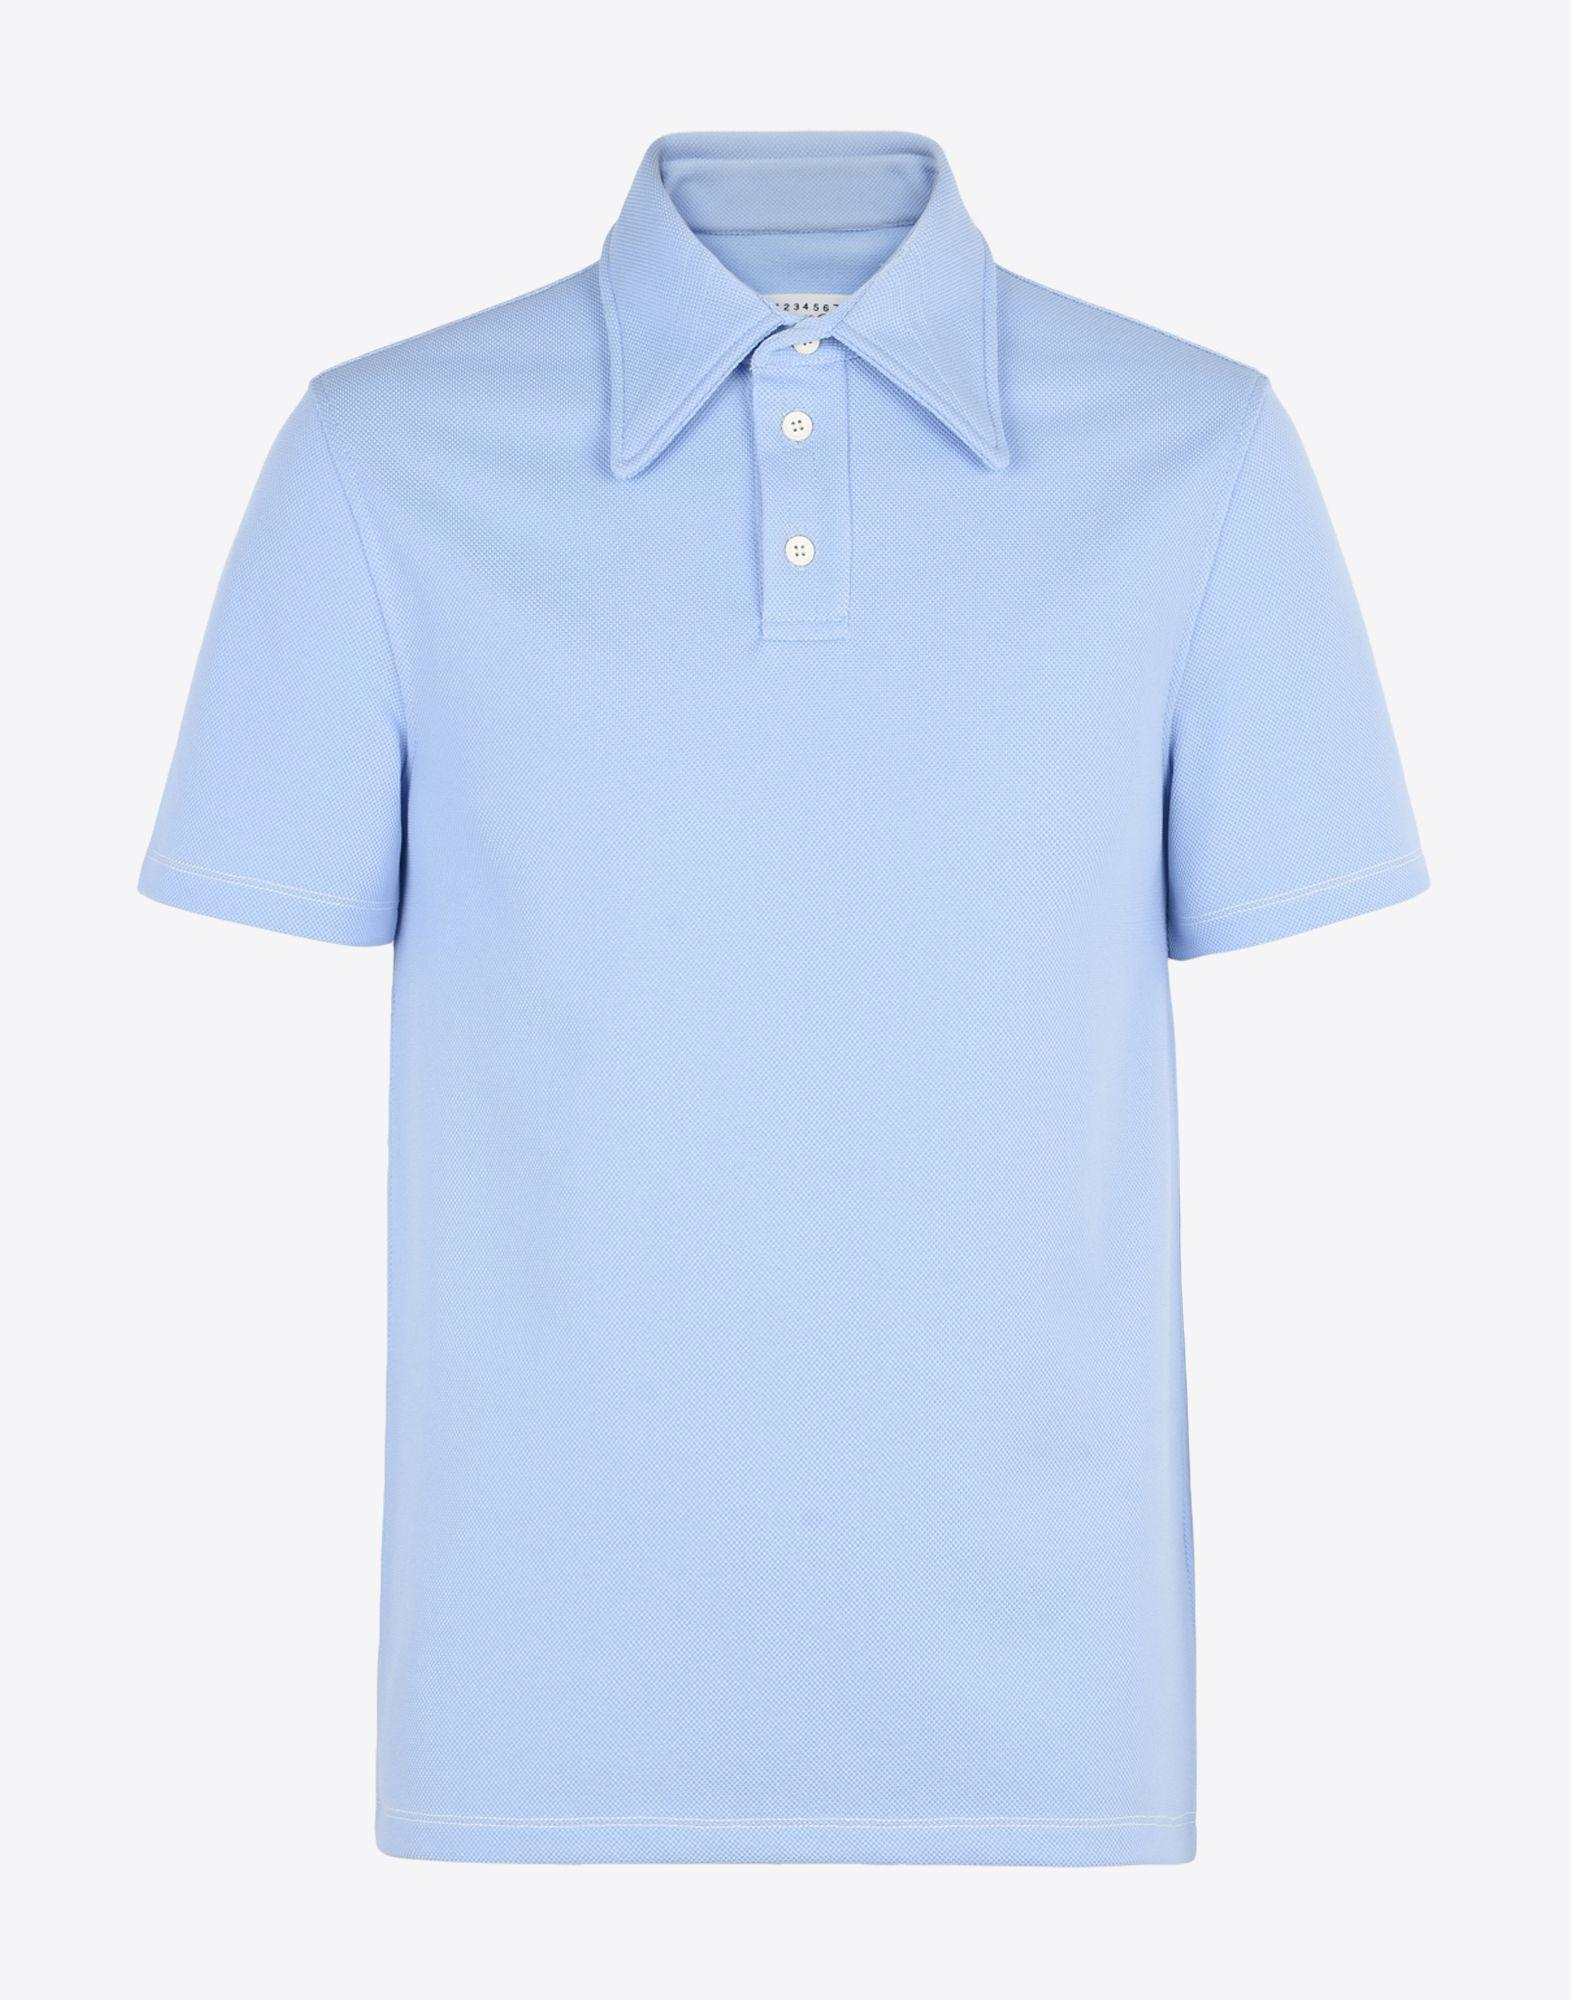 Contrast-collar wool and cotton-blend polo shirt Maison Martin Margiela Shop Cheap Online Discount Latest Collections For Sale Discount Sale pCh26